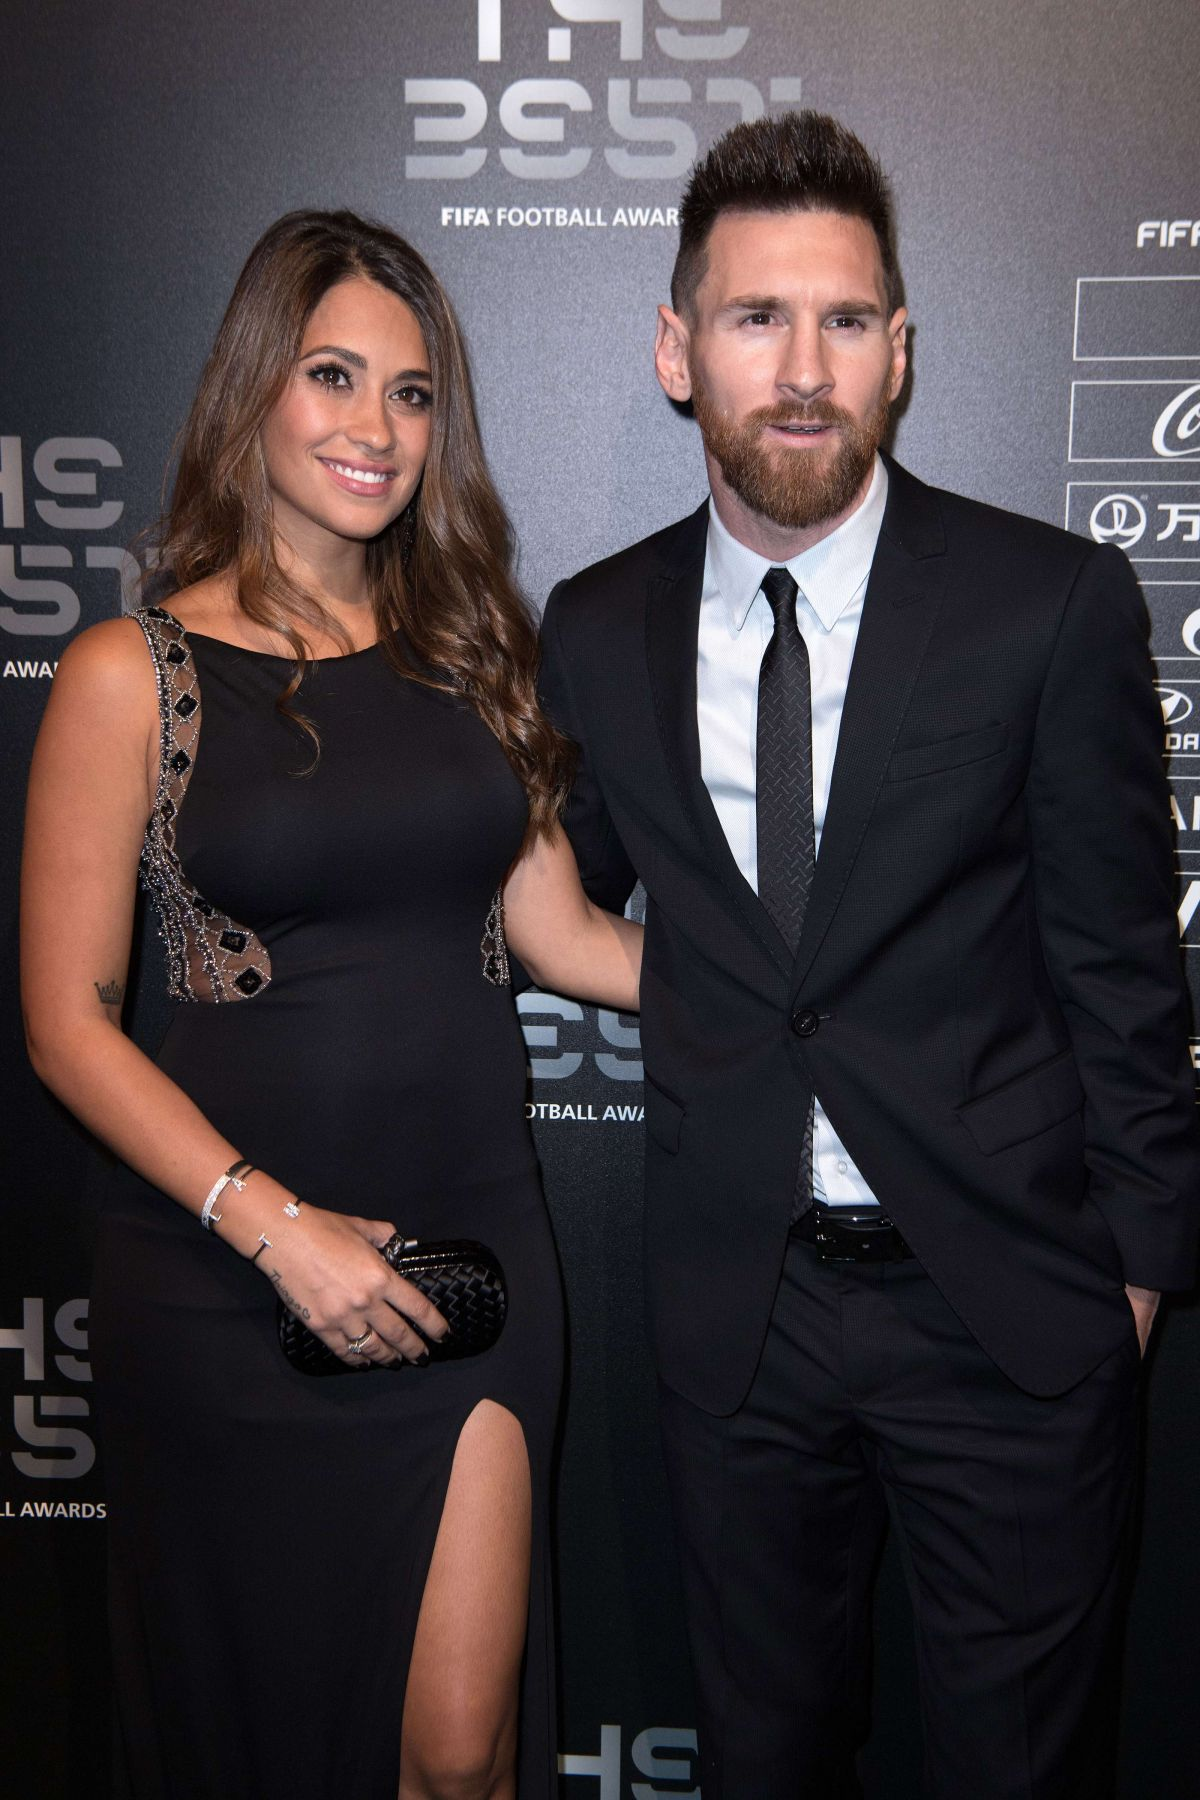 Antonella Roccuzzo And Lionel Messi At Best Fifa Football Awards In London